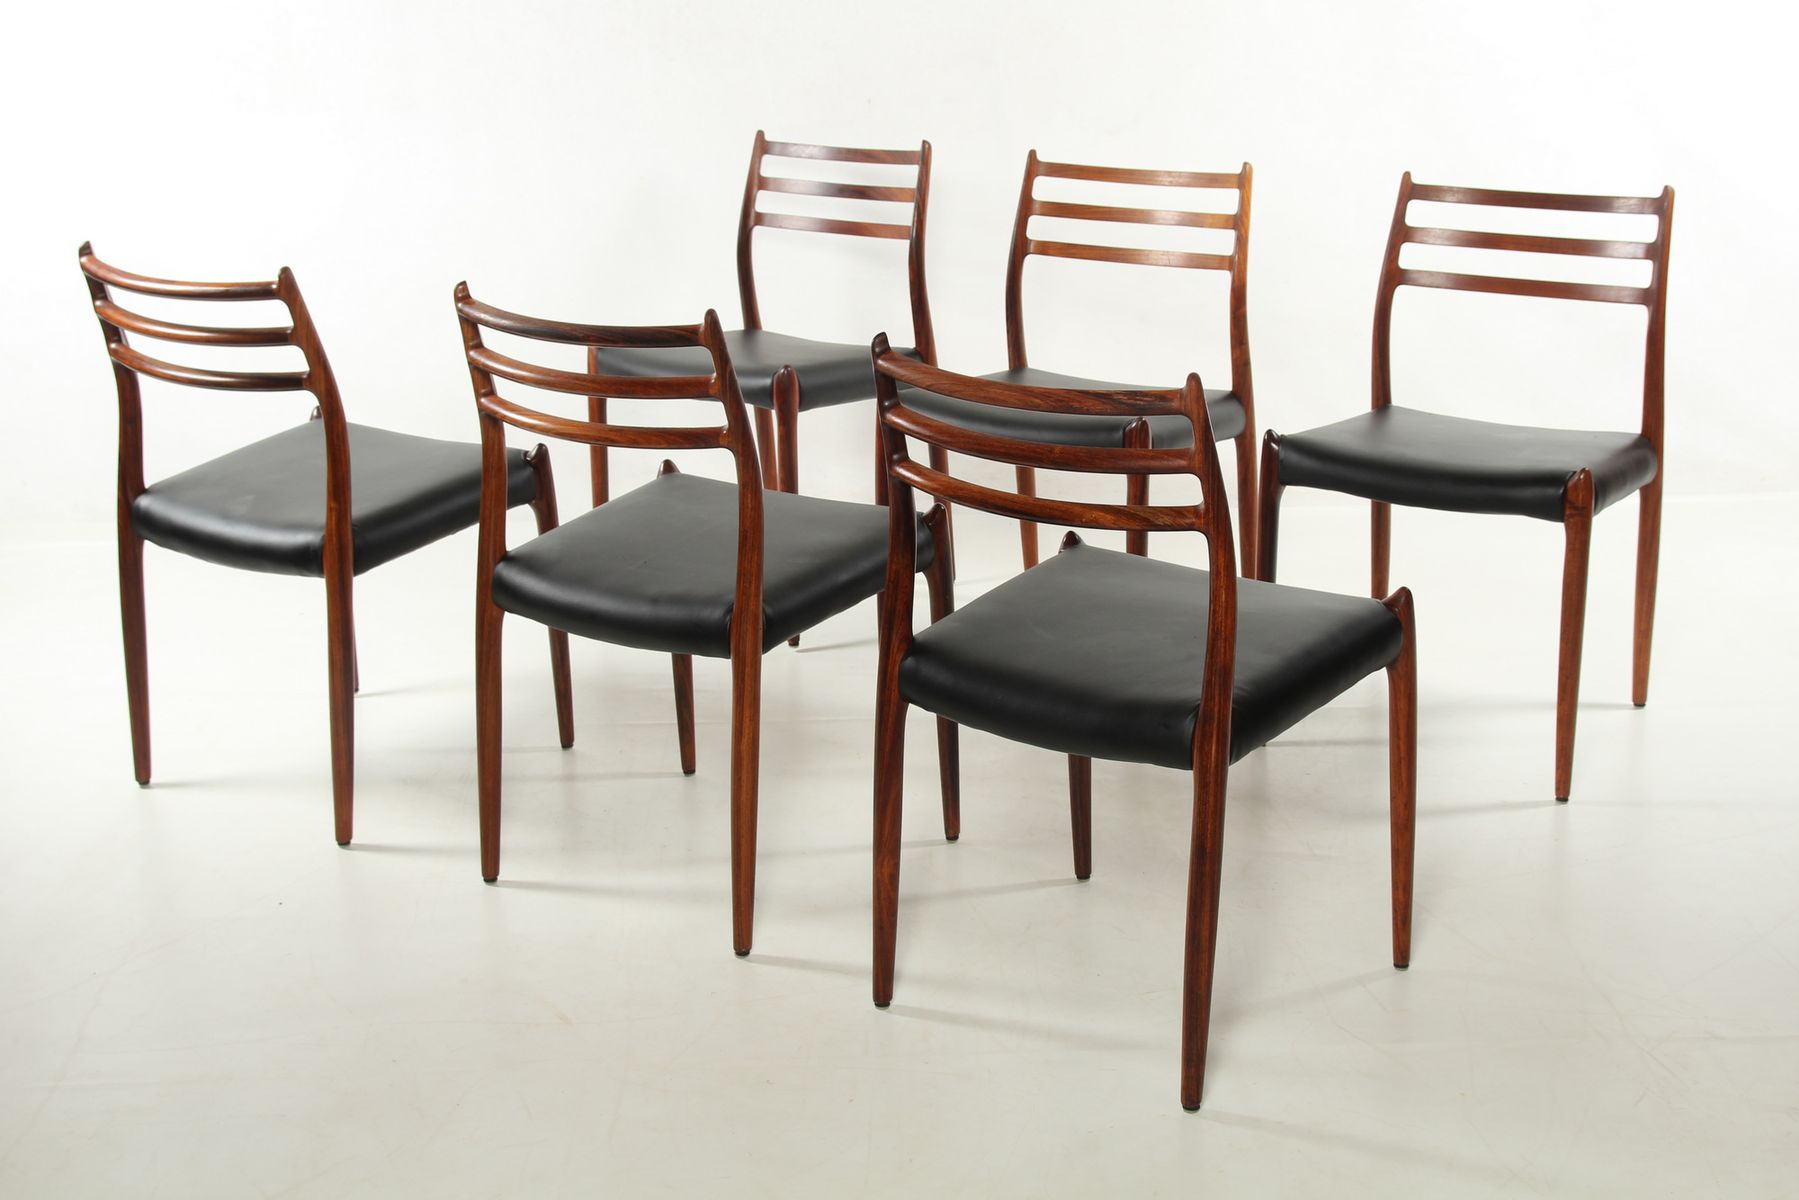 Model 78 Rosewood Chairs by NO M248ller for JL M248llers  : model 78 rosewood chairs by n o moller for j l mollers 1970s set of 6 16 from www.pamono.com size 1800 x 1200 jpeg 110kB